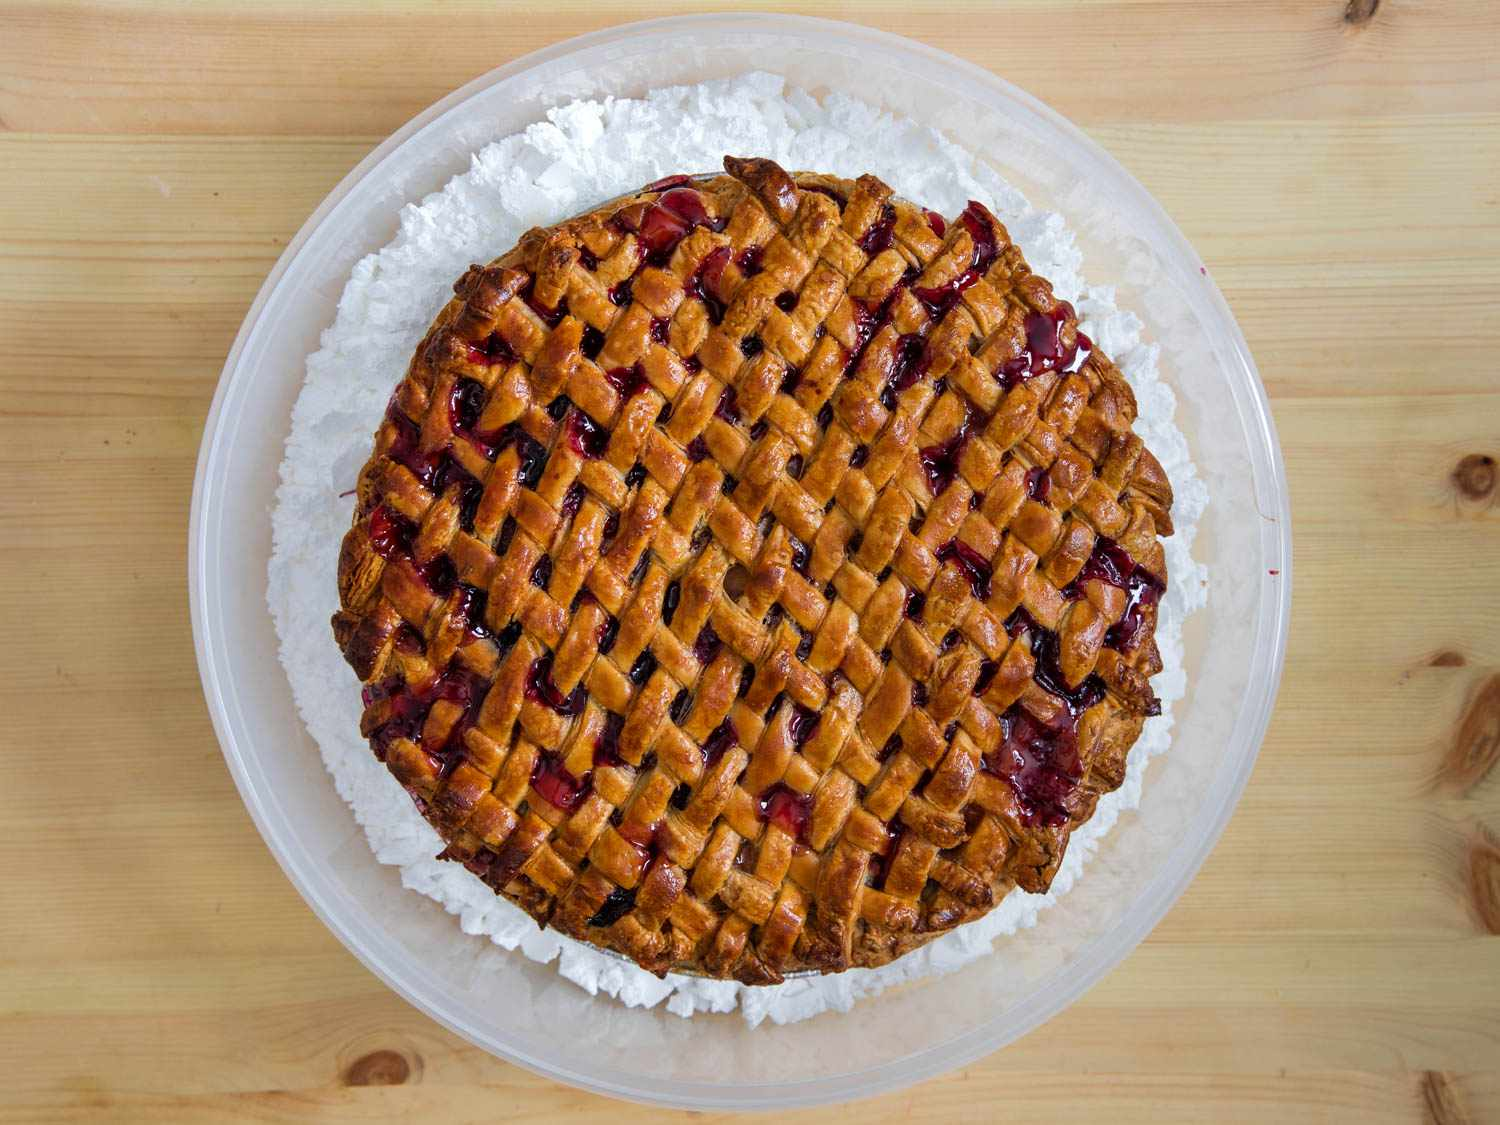 Overhead shot of a lattice-topped fruit pie on a layer of Epsom salt in a pie carrier